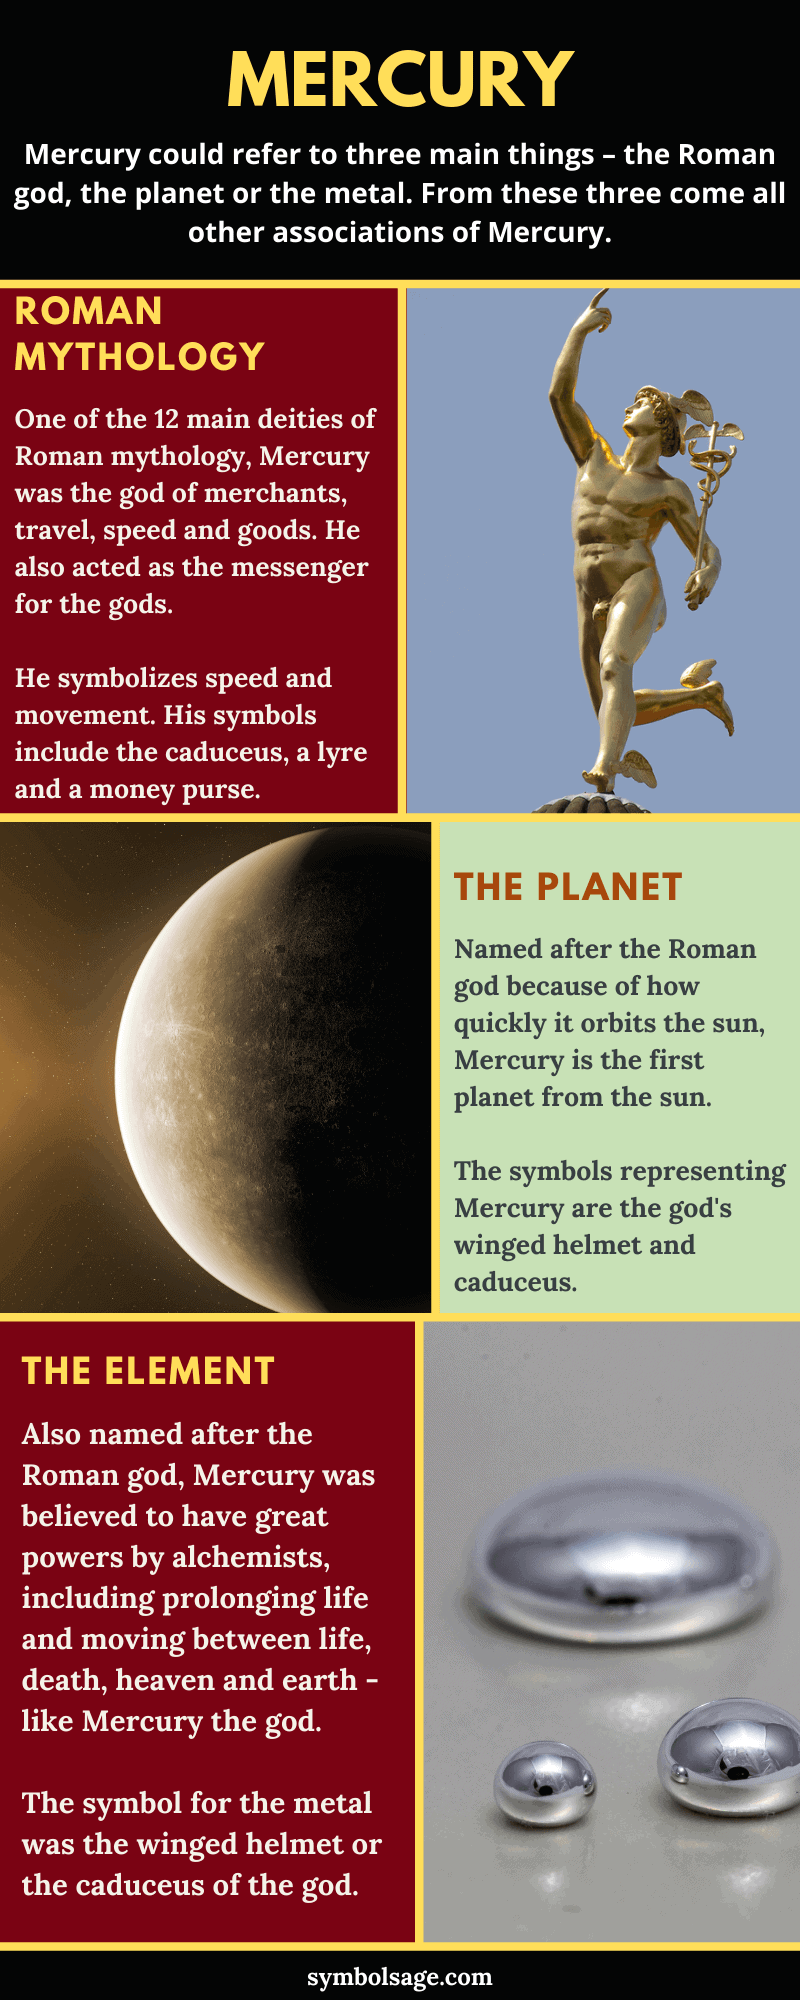 Mercury symbolism and meaning